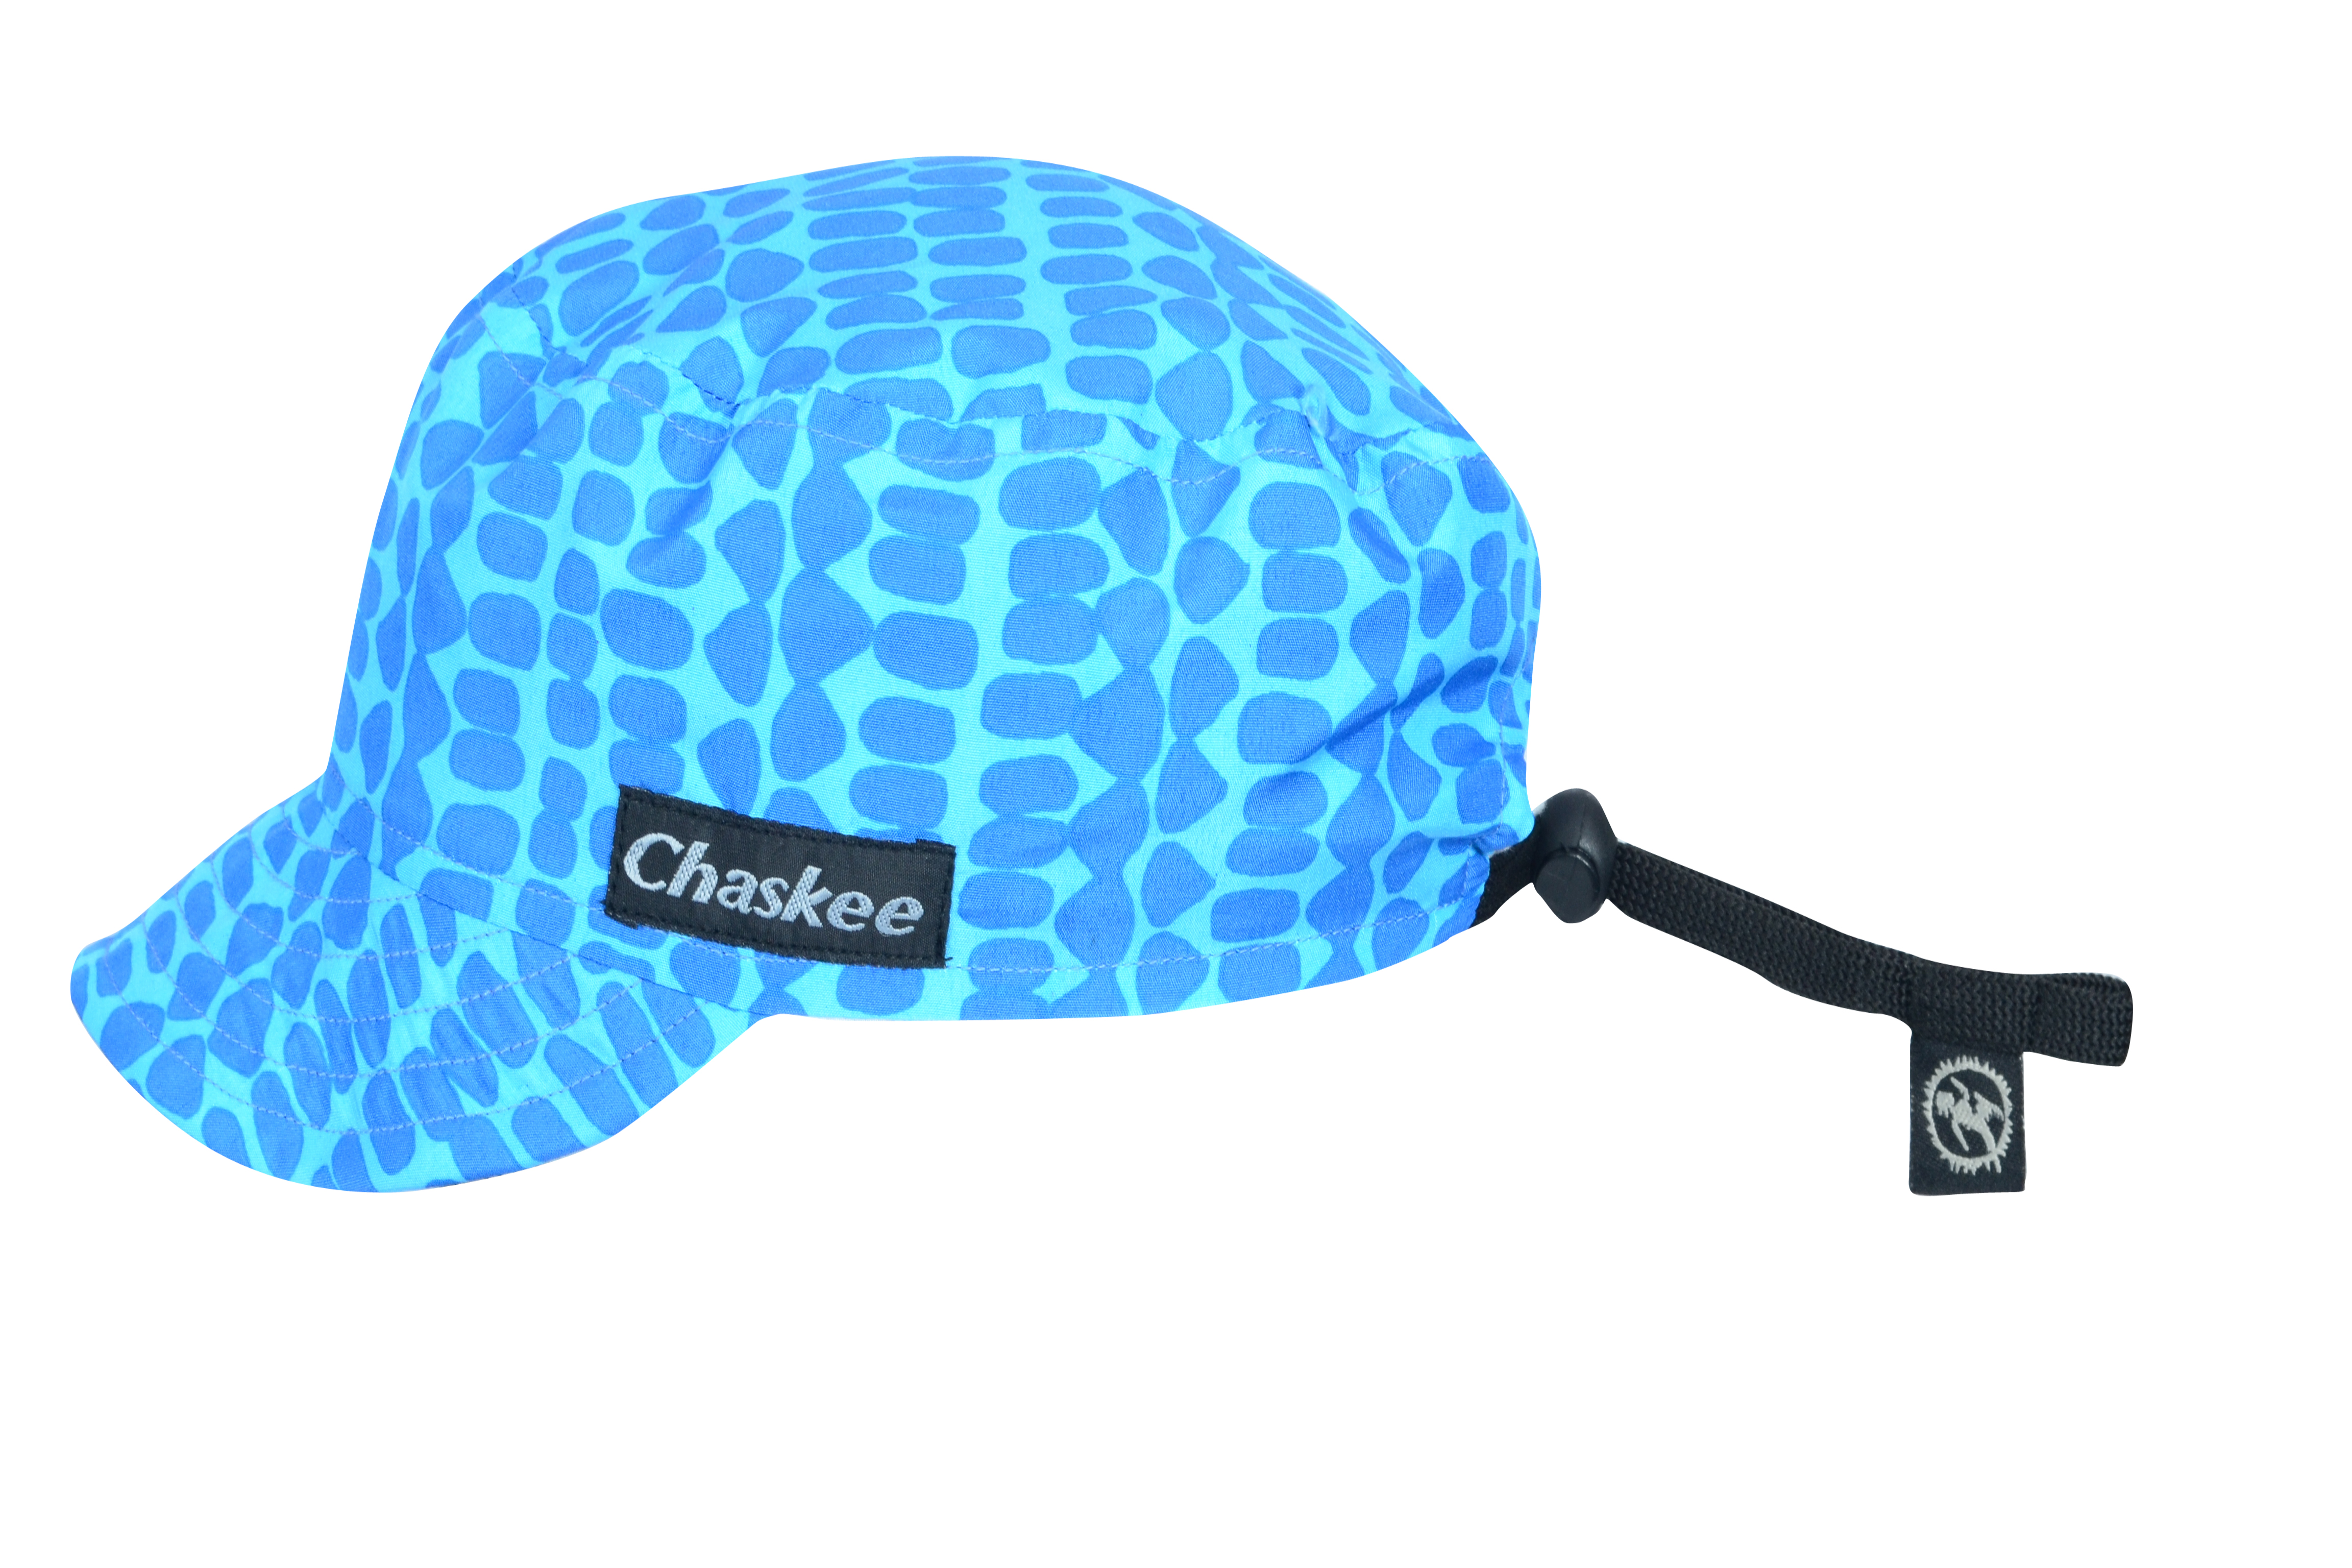 Chaskee Junior Rev Cap - Kinder Wendekappe blue